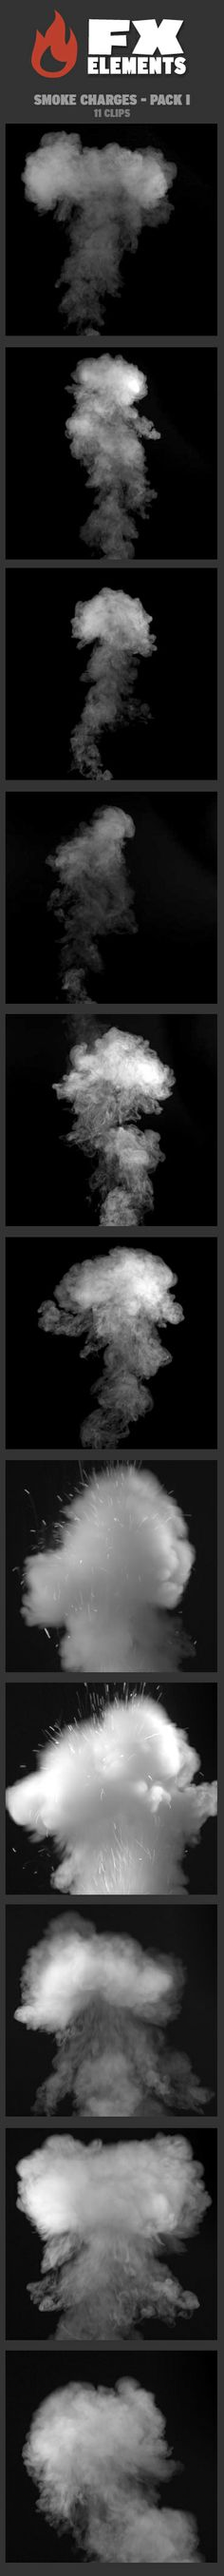 Smoke Charges - Pack I includes 11 FX clips. Smoke charges work well for smoke releases, or for explosions, especially when paired with pyro charges. They can also be easily inverted for black smoke. • All clips delivered with a separate corresponding alpha file • 5 clips horizontal 2K resolution (2048 x 1152) • 6 clips vertical 2K resolution (1152 x 2048) | $49 | #VFX #FxElements